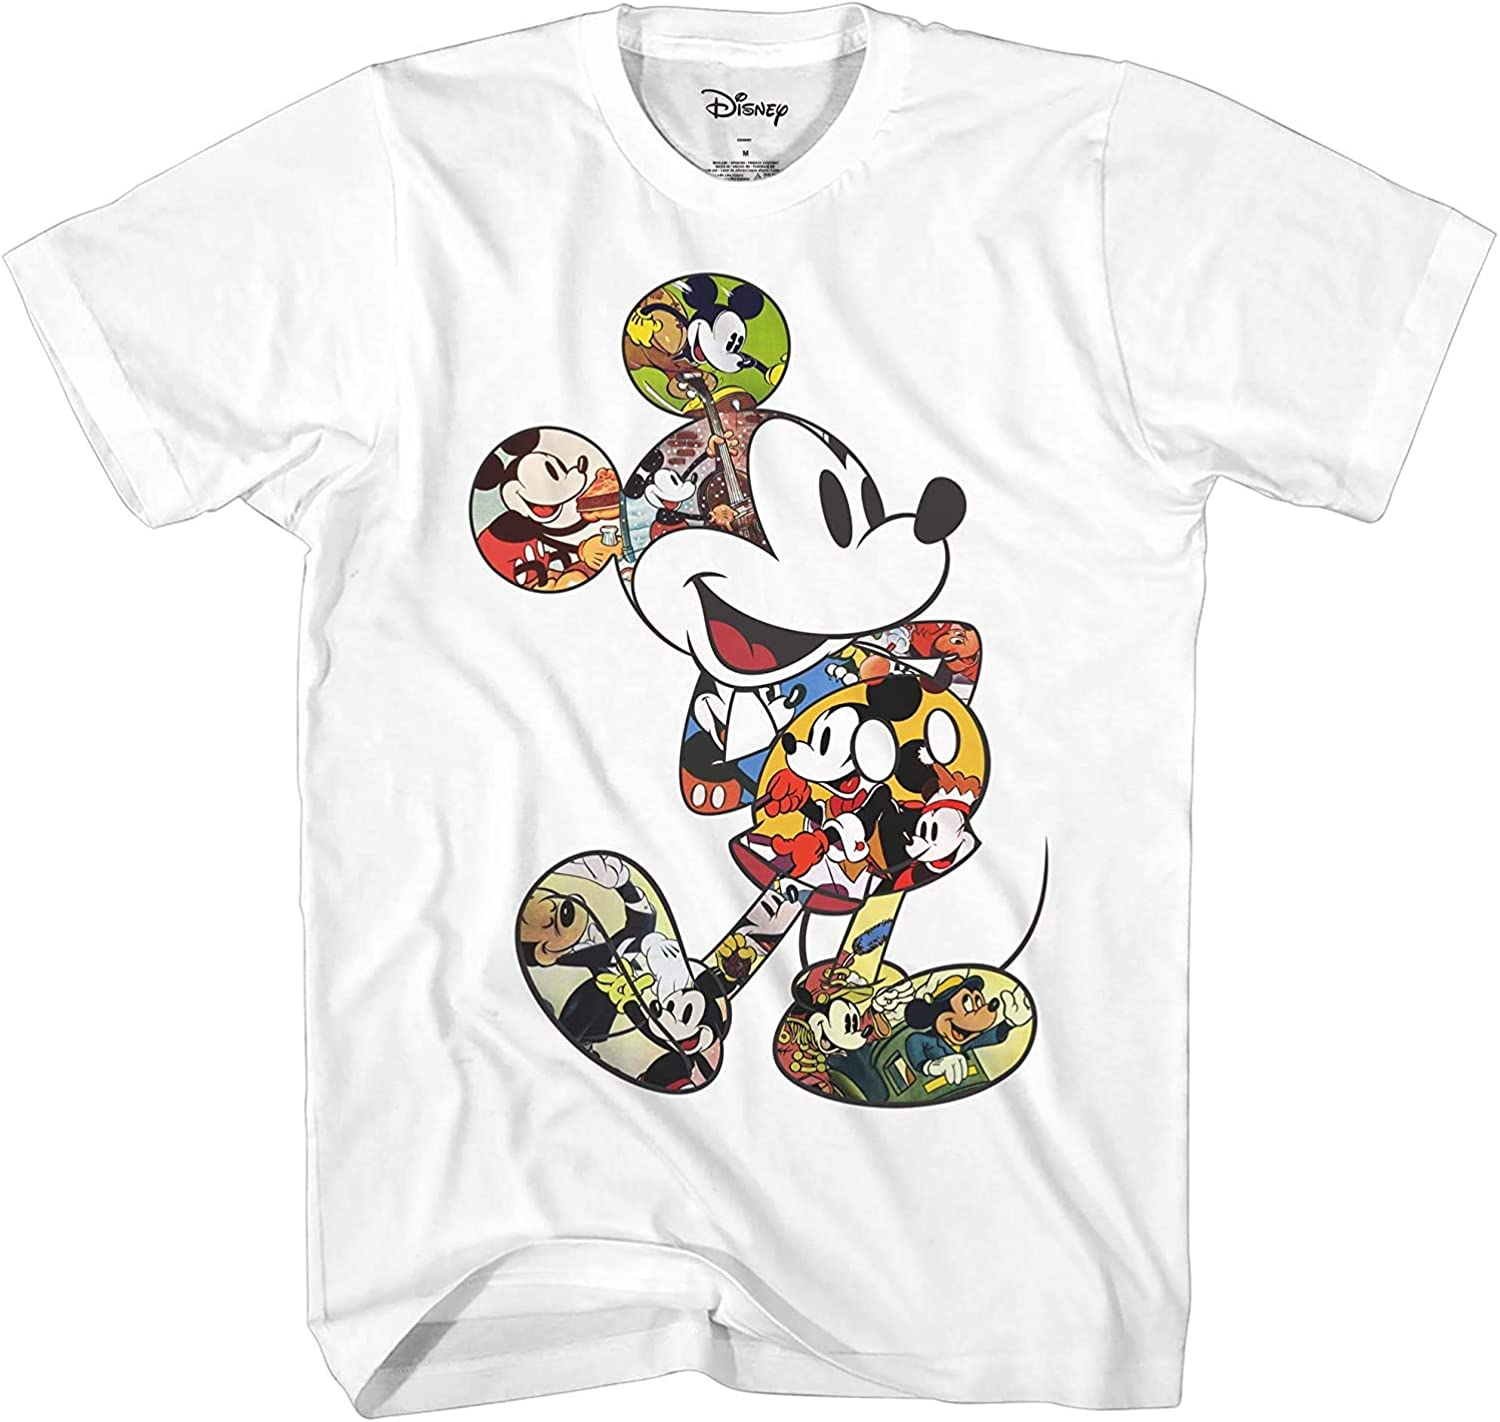 Mickey Mouse Scene Me Vintage Classic Disneyland World Adult Tee Graphic T-Shirt for Men Tshirt Clothing